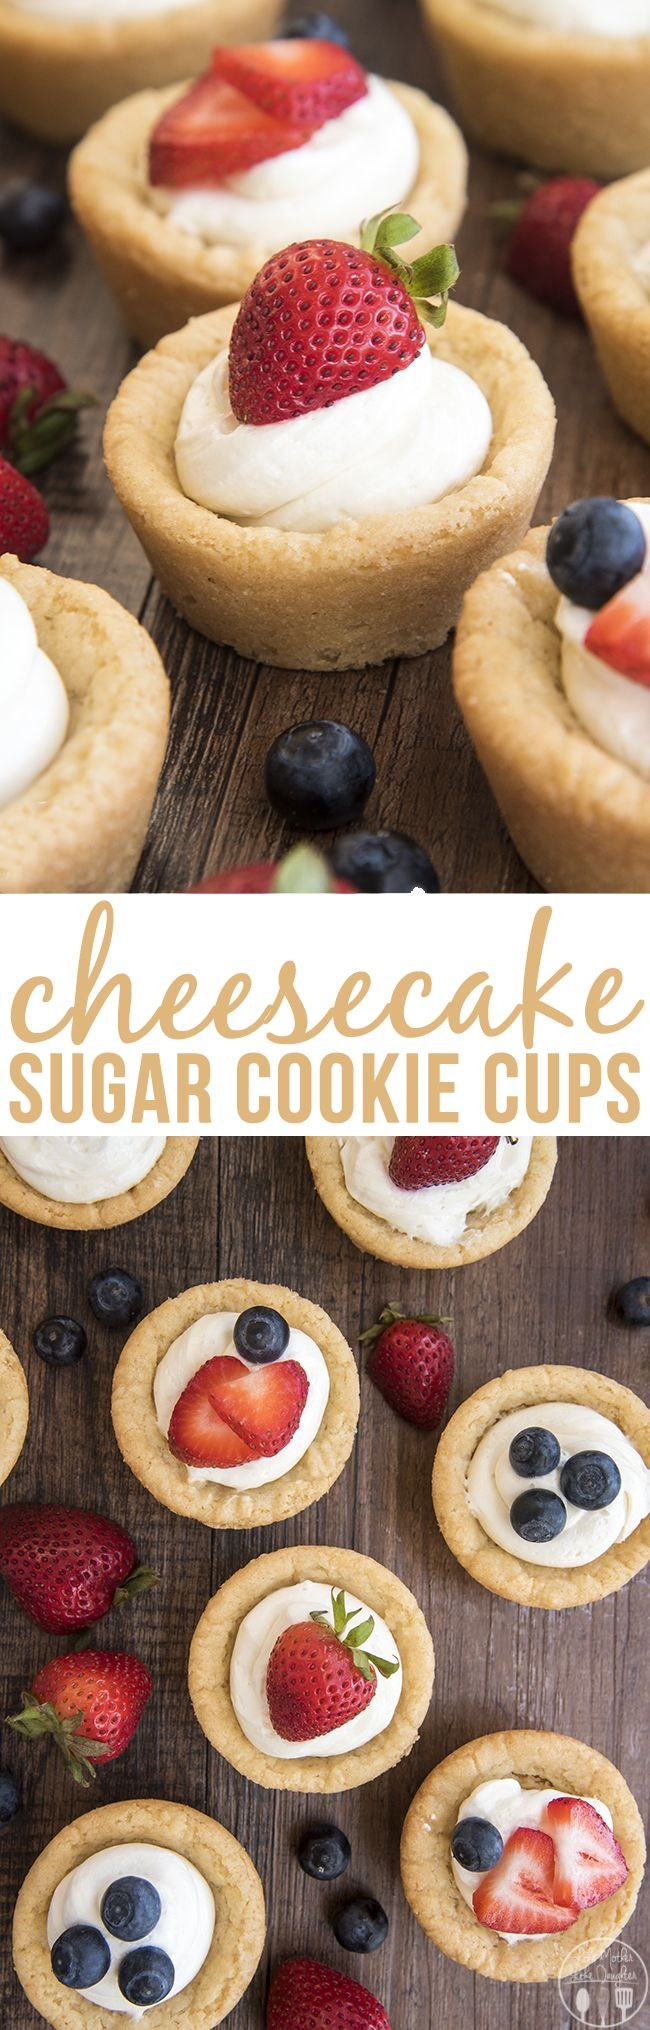 Cheesecake Sugar Cookie Cups | Recipe | Little cup, No bake ...